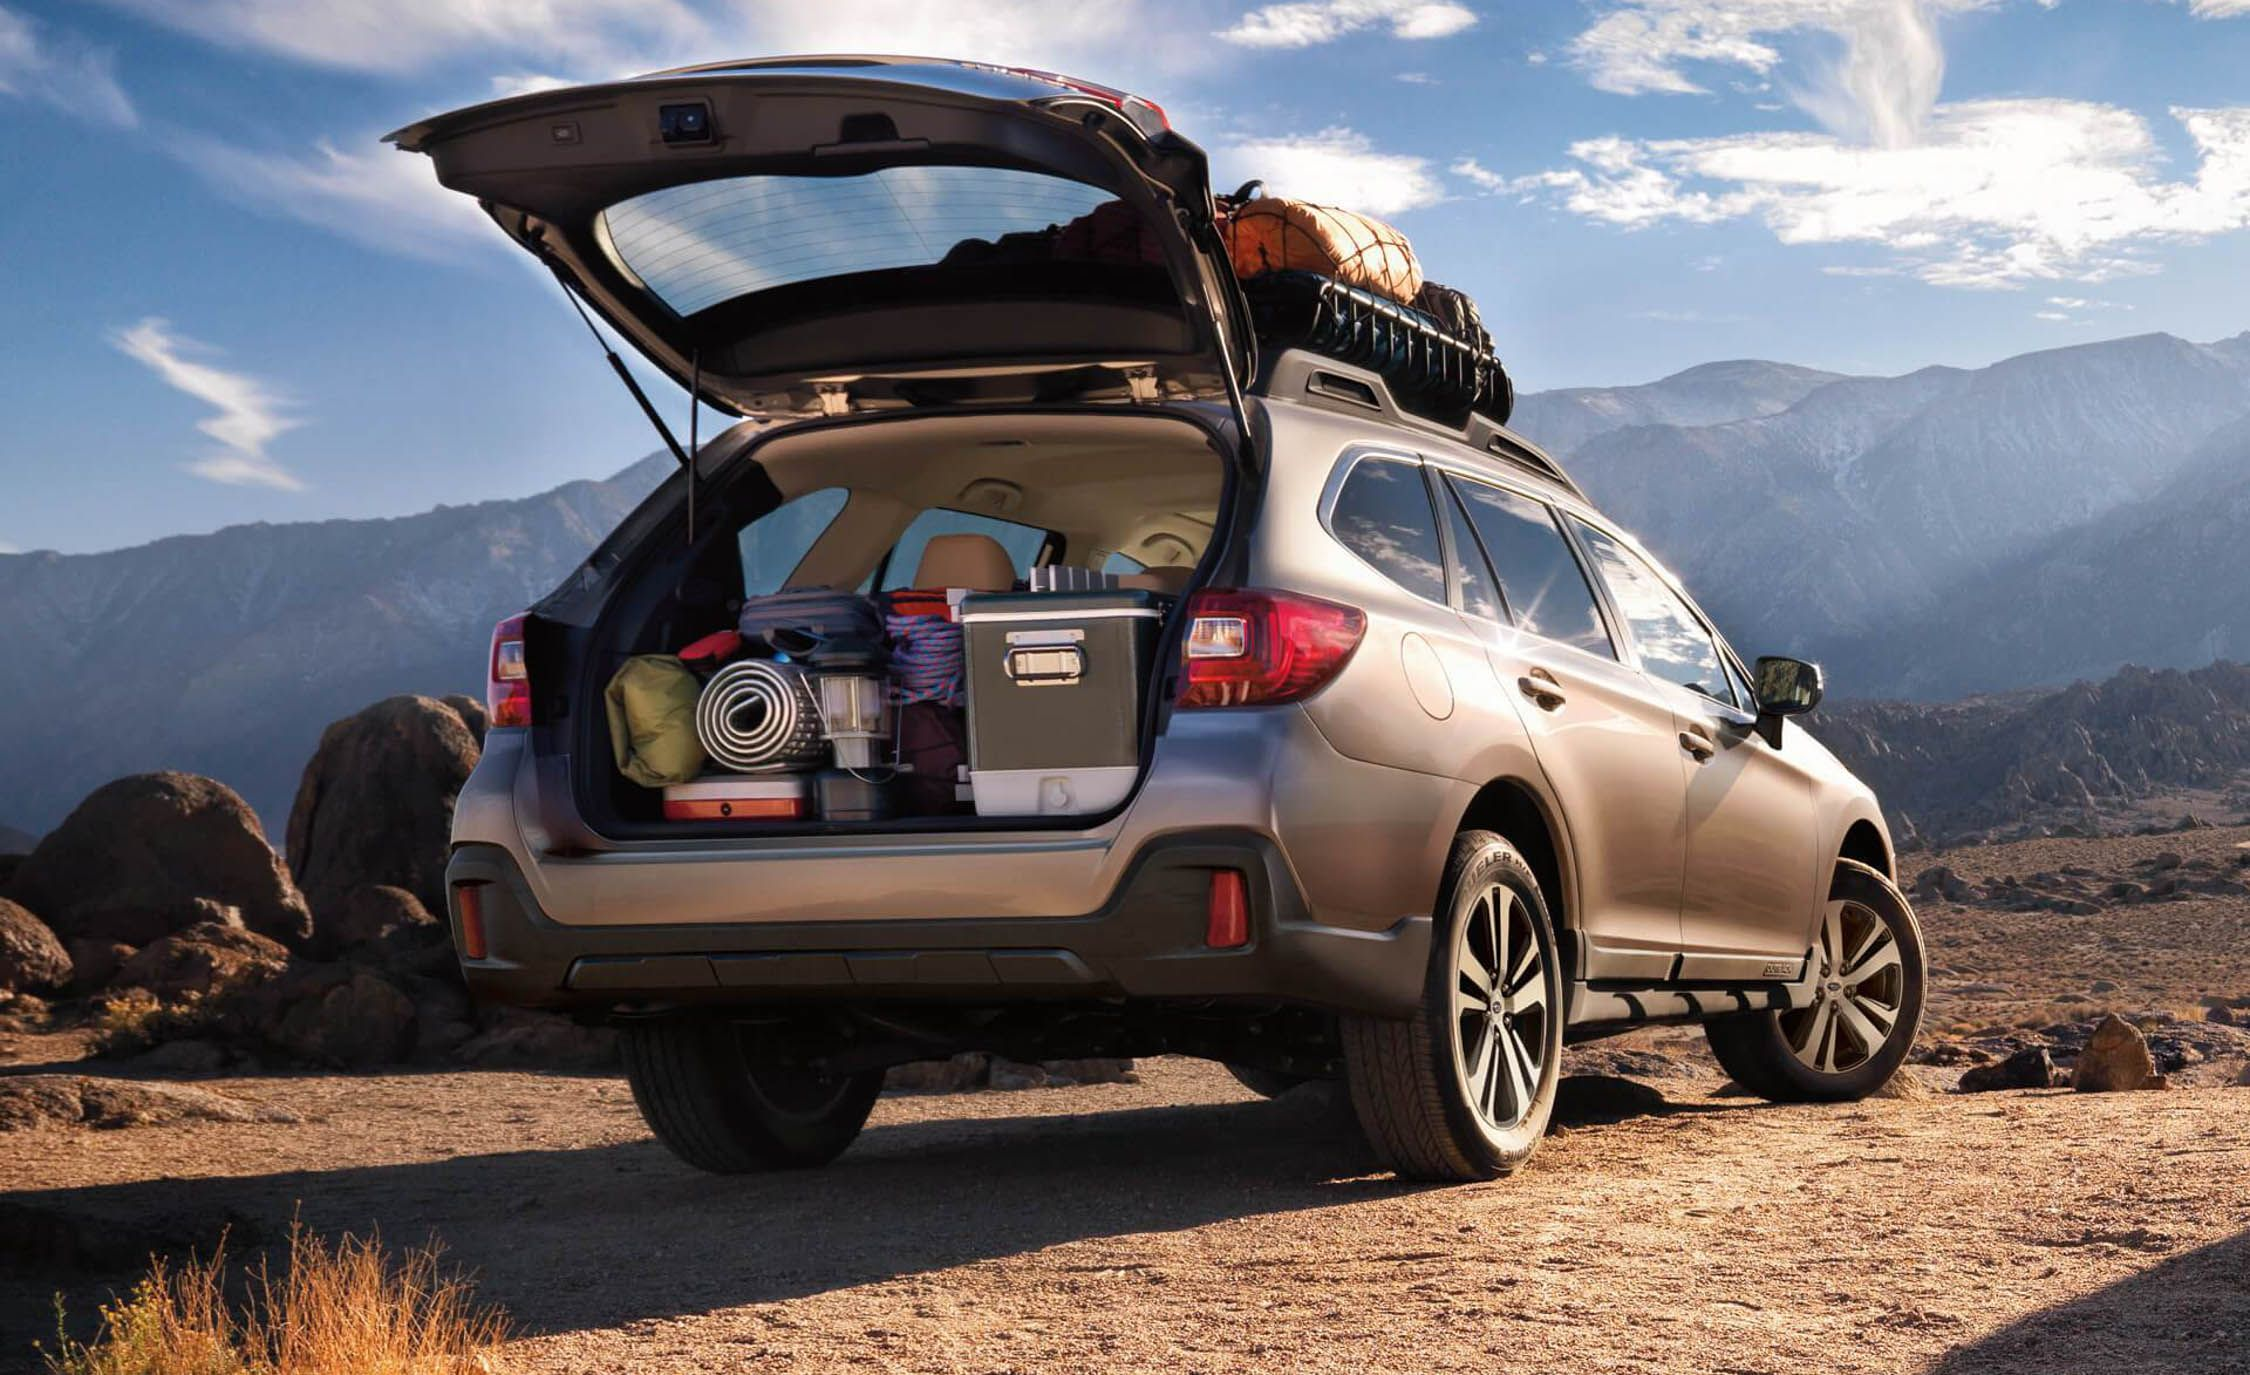 2018 subaru outback cargo space and storage review car and driver. Black Bedroom Furniture Sets. Home Design Ideas